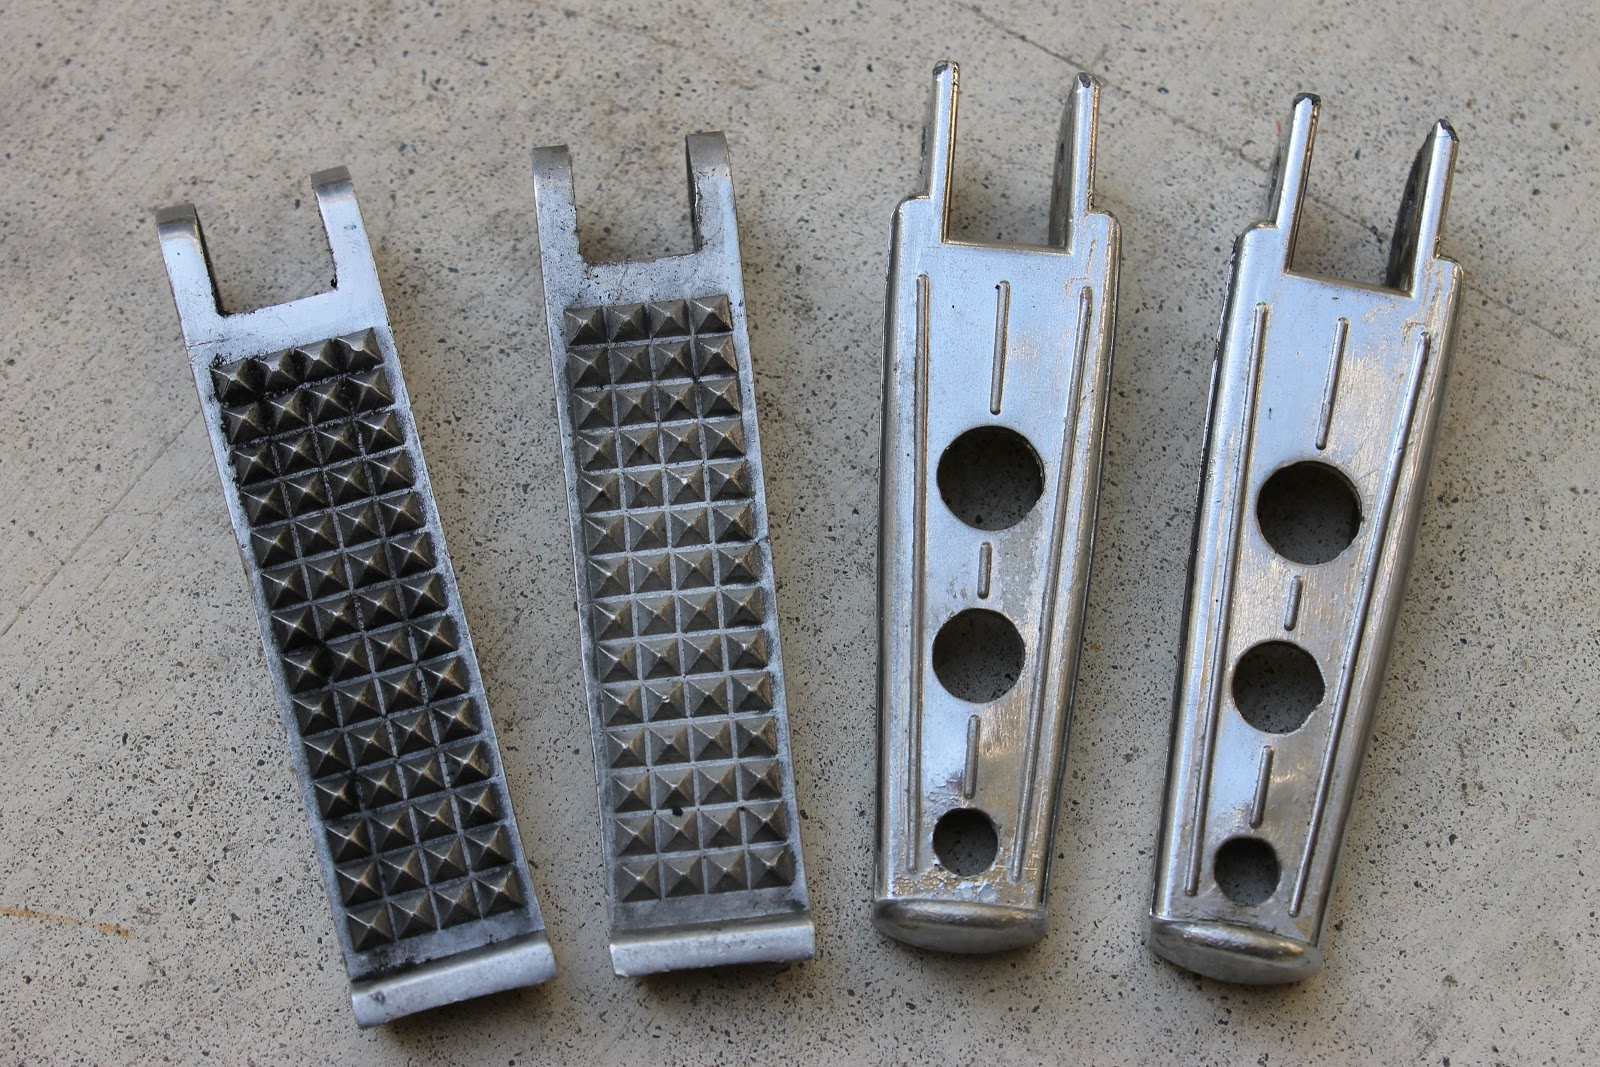 Mindpill Motorcycle Parts For Sale On Ebay